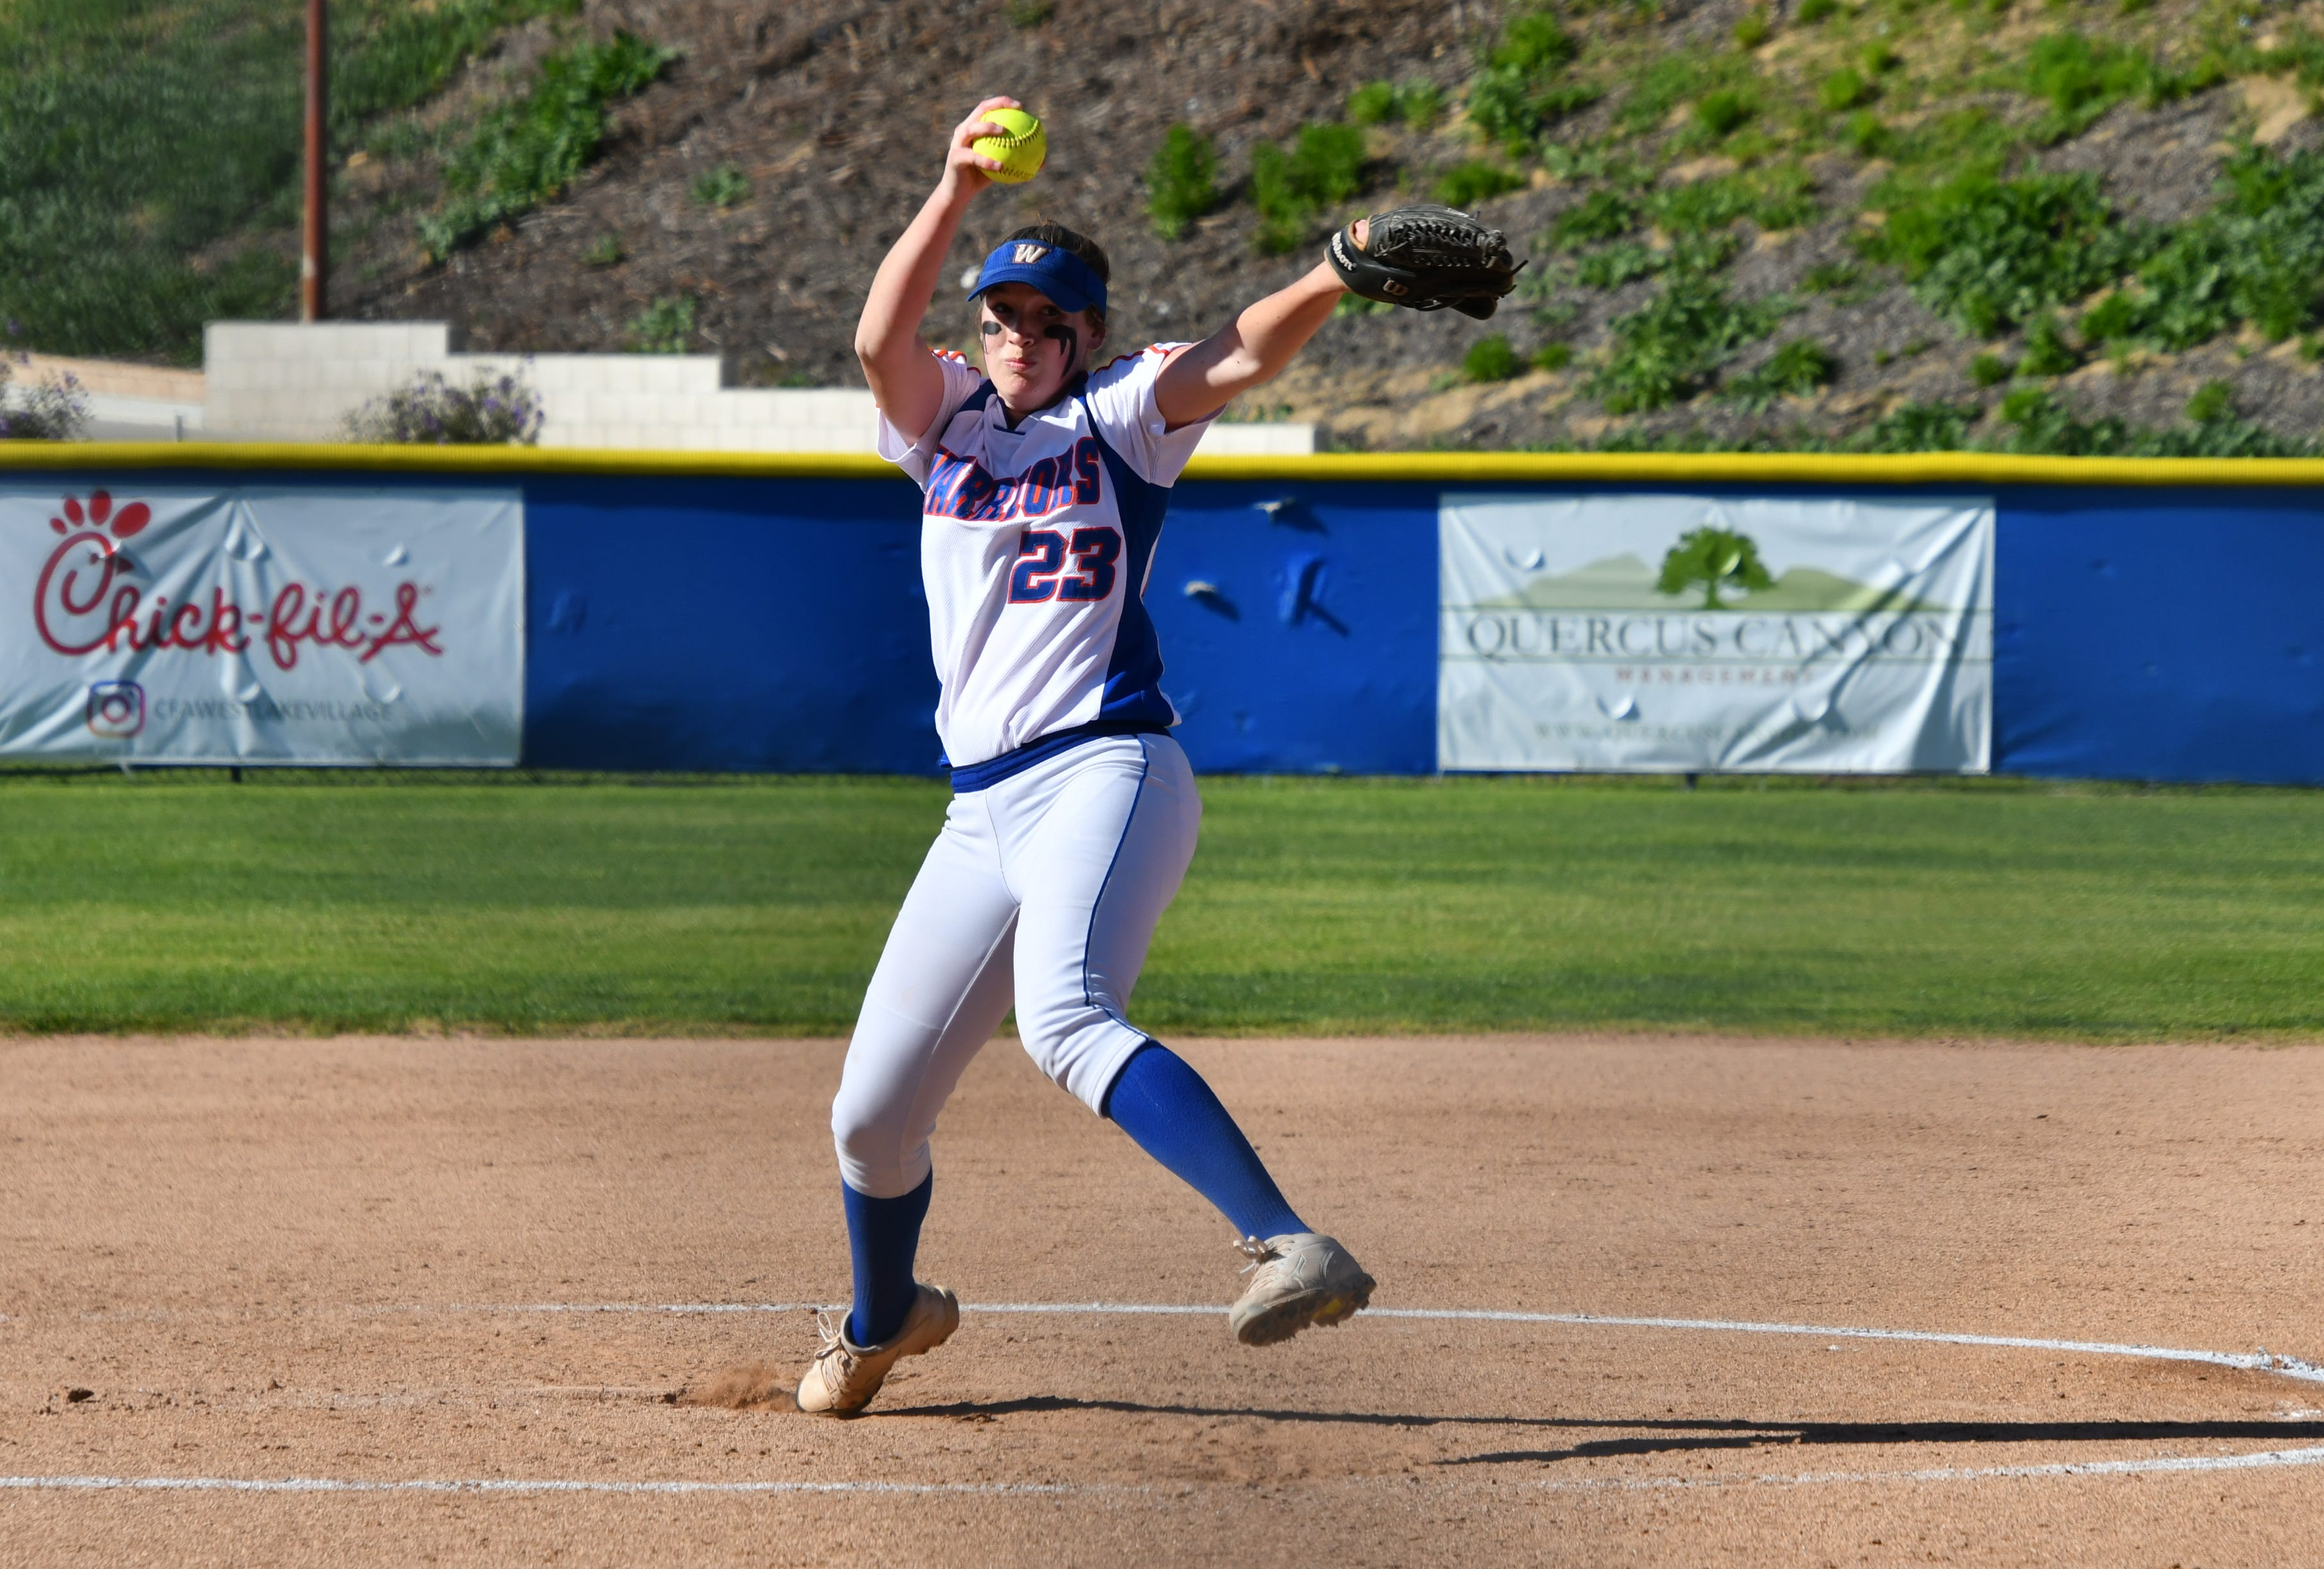 Westlake senior Alexa Campbell delivers a pitch against visiting Thousand Oaks on Thursday afternoon. Thousand Oaks won, 10-4, in 10 innings.